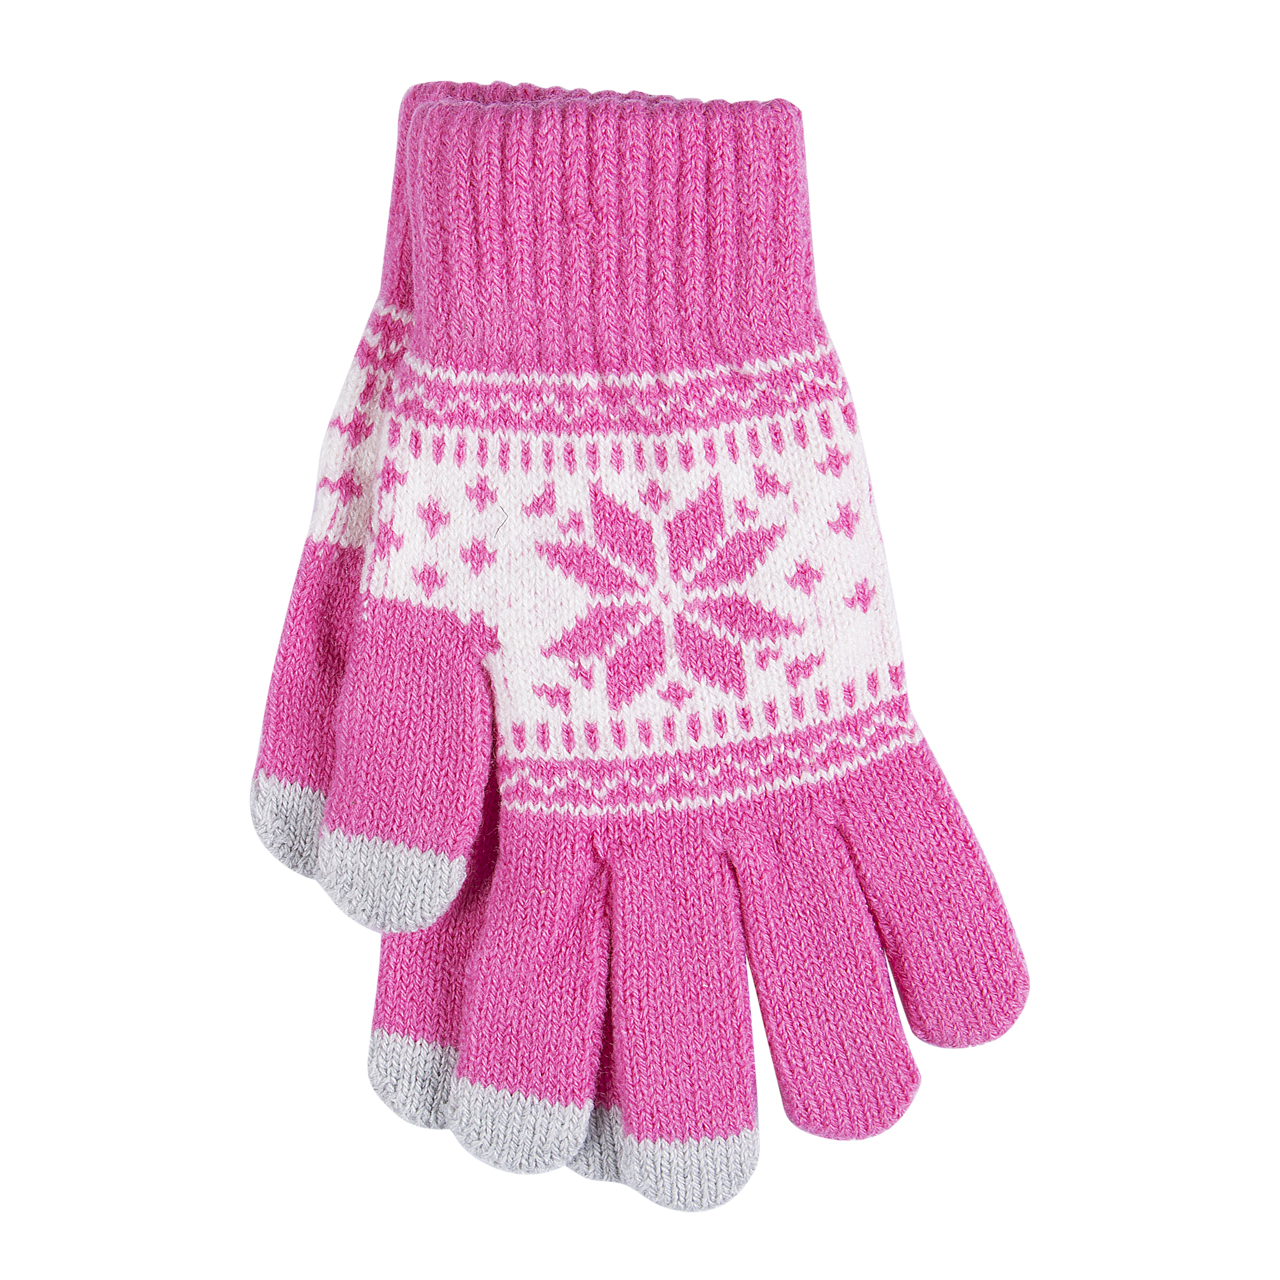 ITFABS Newest Arrivals Fashion Hot Warm Winter Gloves Knitted Touch Gloves Men Women Gloves Touch Screen Fashion Glove